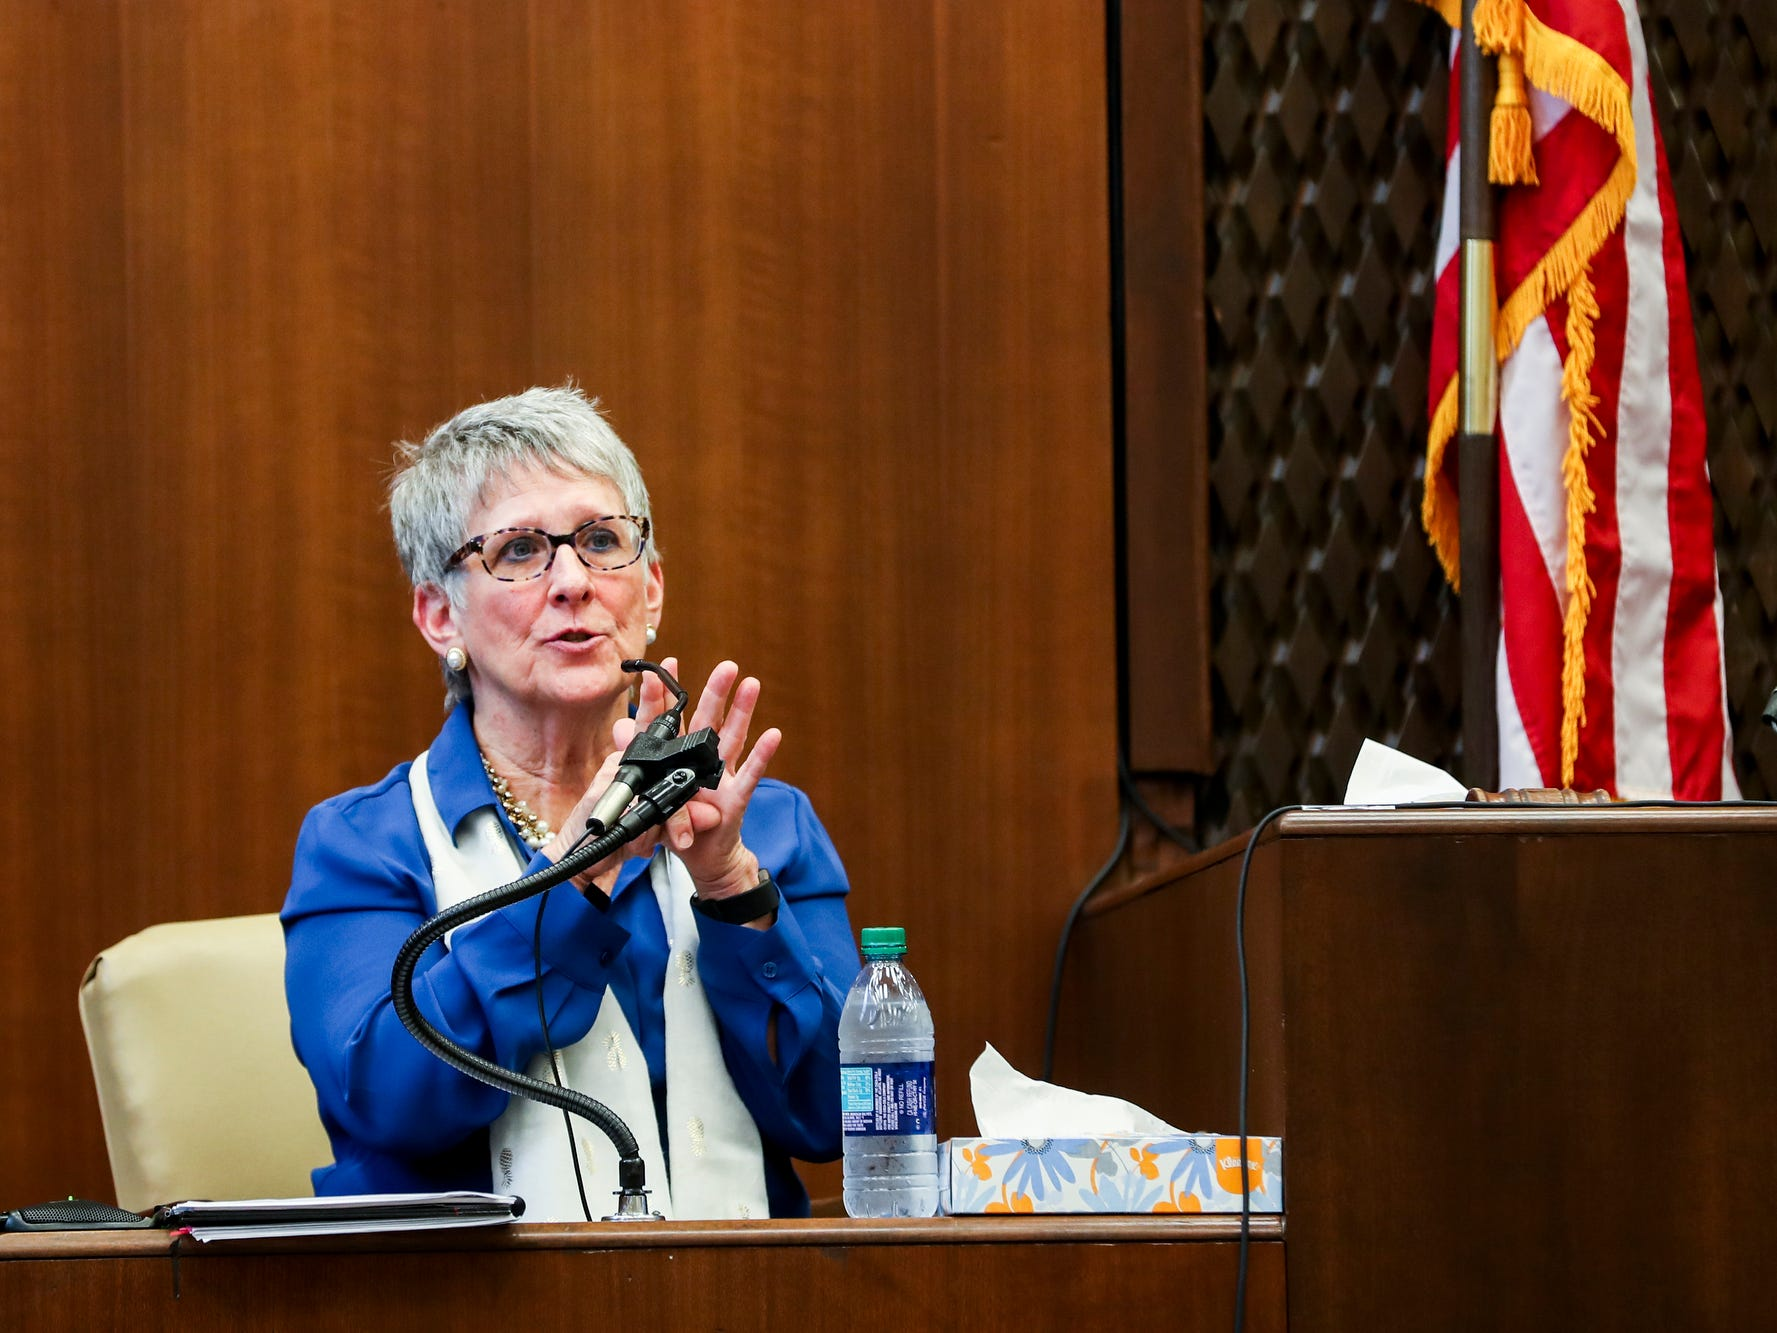 Dr. Carolyn Wiles Higdon testifies during the first day of the retrial of Quinton Tellis in Batesville, Miss., Tuesday, Sept. 25 2018. Tellis is charged with burning 19-year-old Jessica Chambers to death almost three years ago on Dec. 6, 2014. Tellis has pleaded not guilty to the murder. (Brad Vest/The Commercial Appeal via AP, Pool)